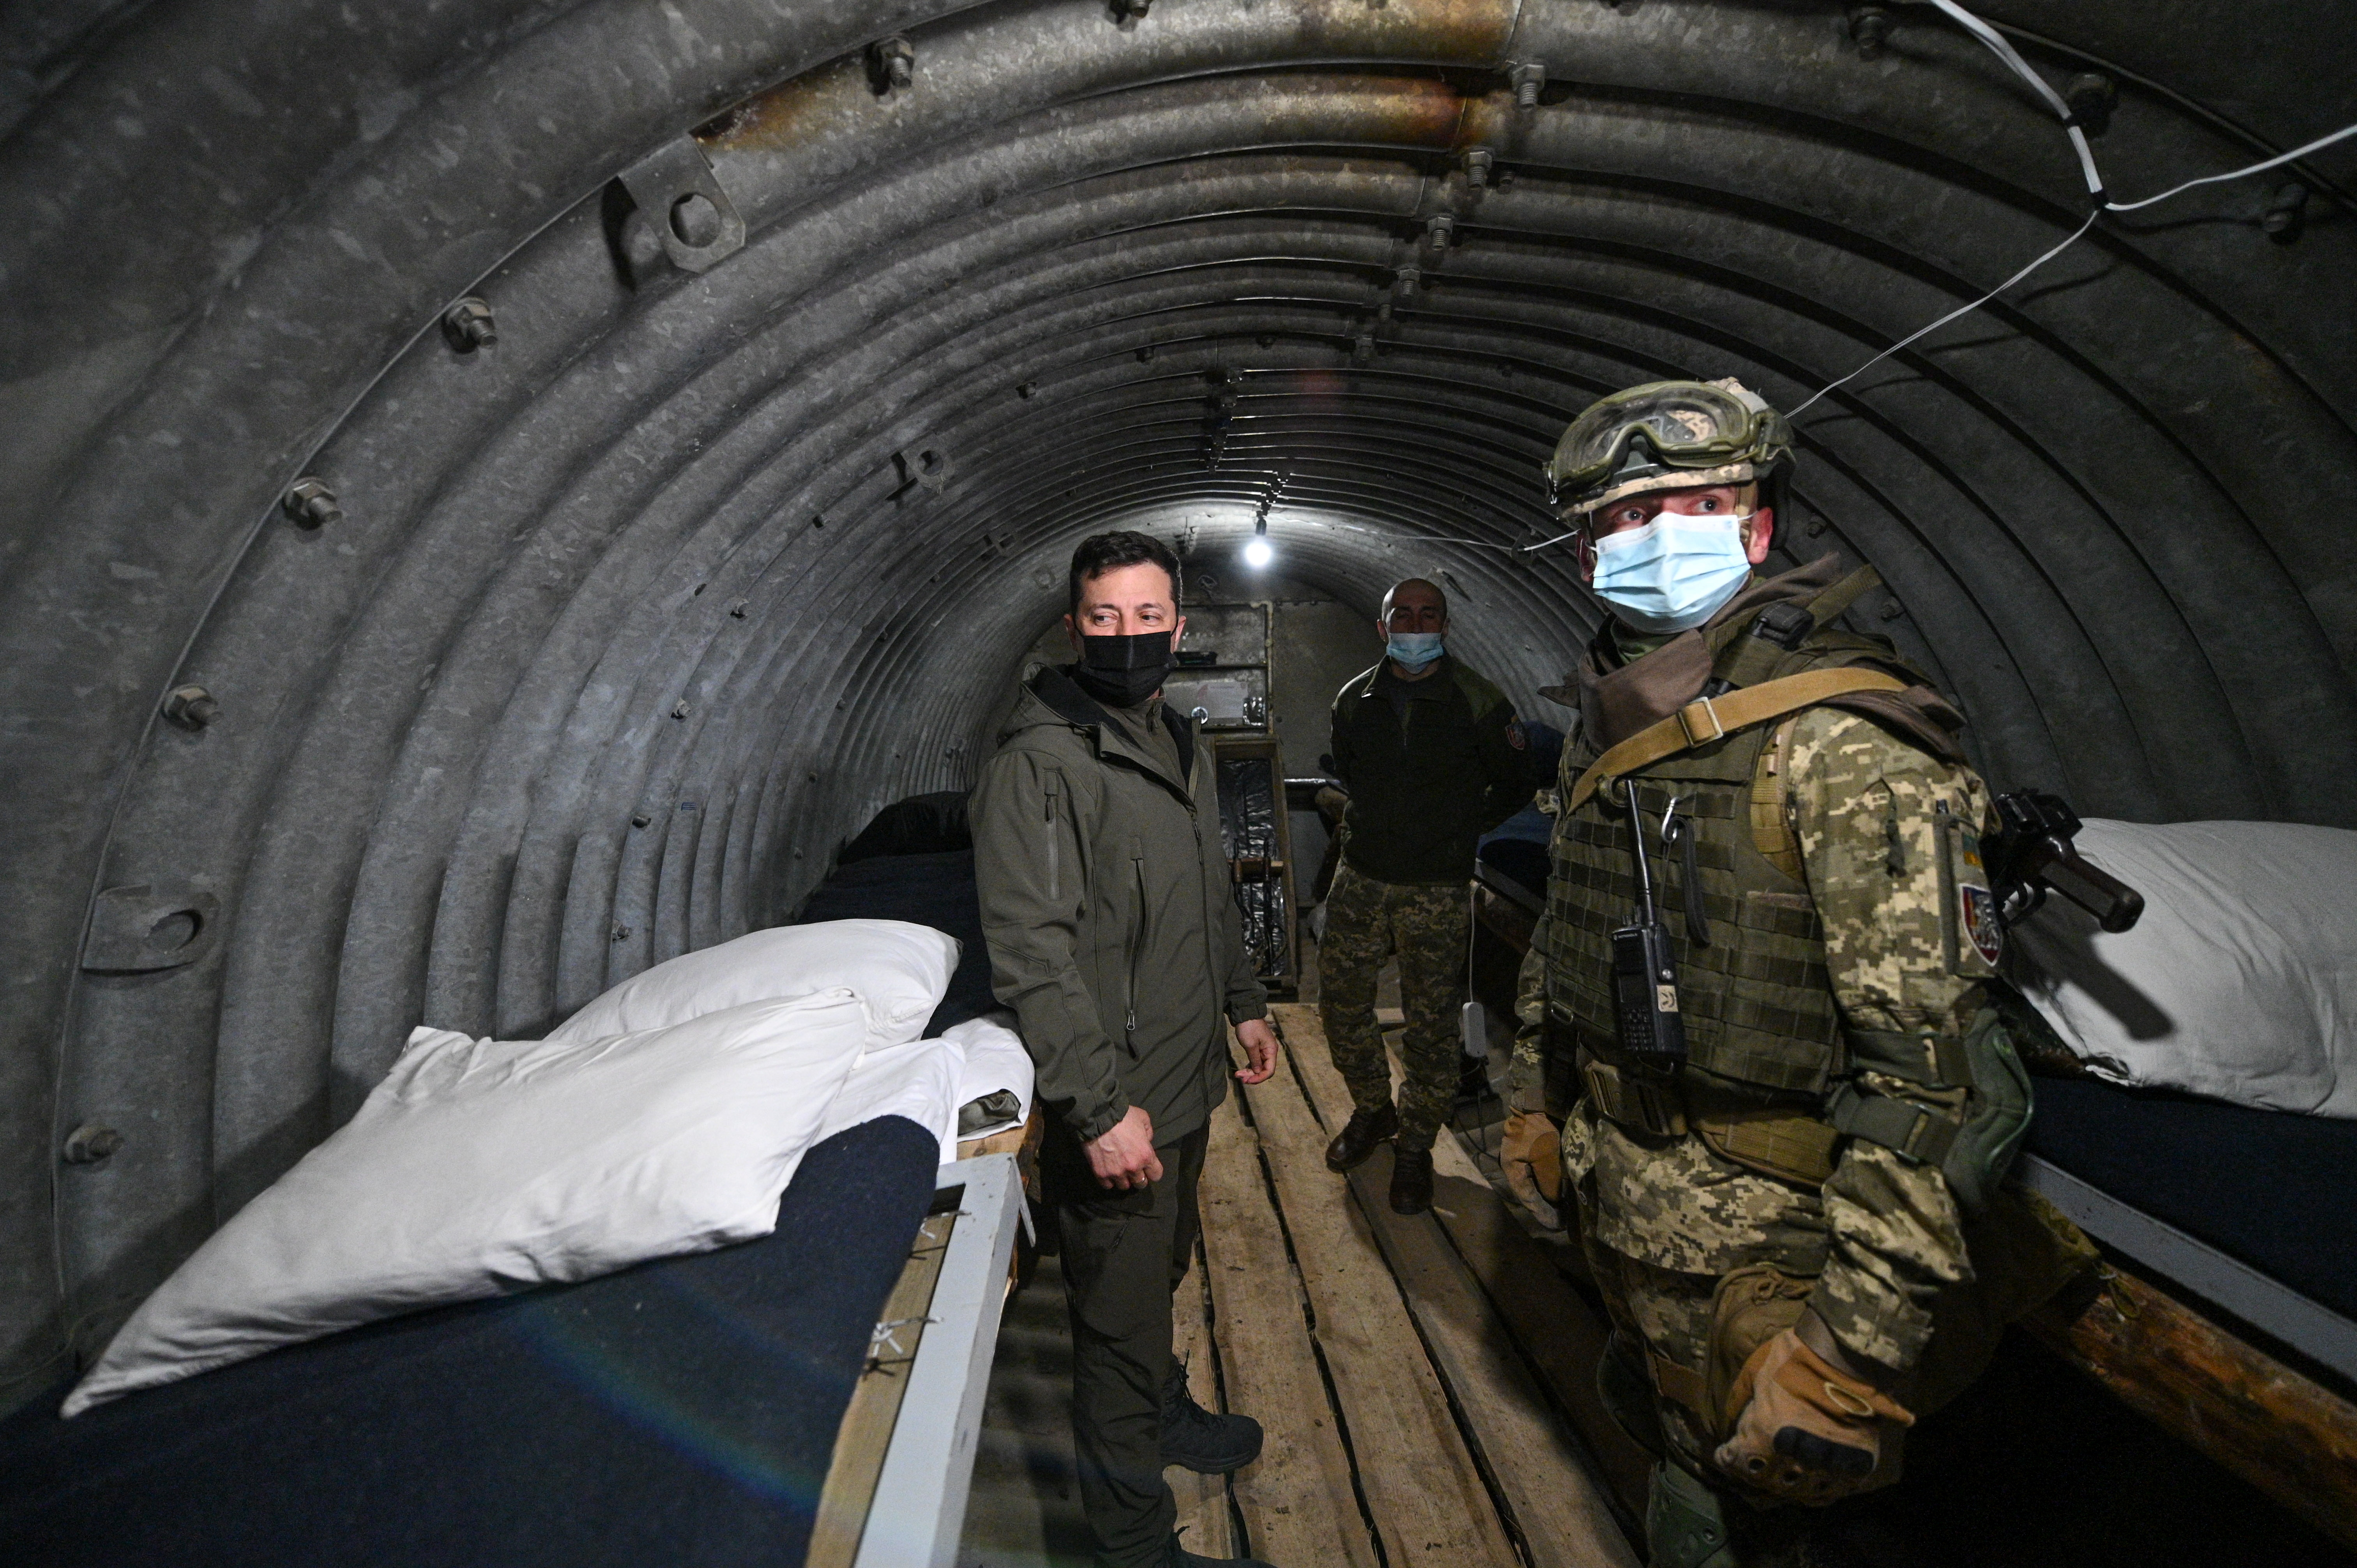 Ukrainian President Volodymyr Zelenskiy visits a military fortification in Kherson Region bordering the Crimean peninsula annexed by Russia, in Ukraine April 27, 2021. Ukrainian Presidential Press Service/Handout via REUTERS